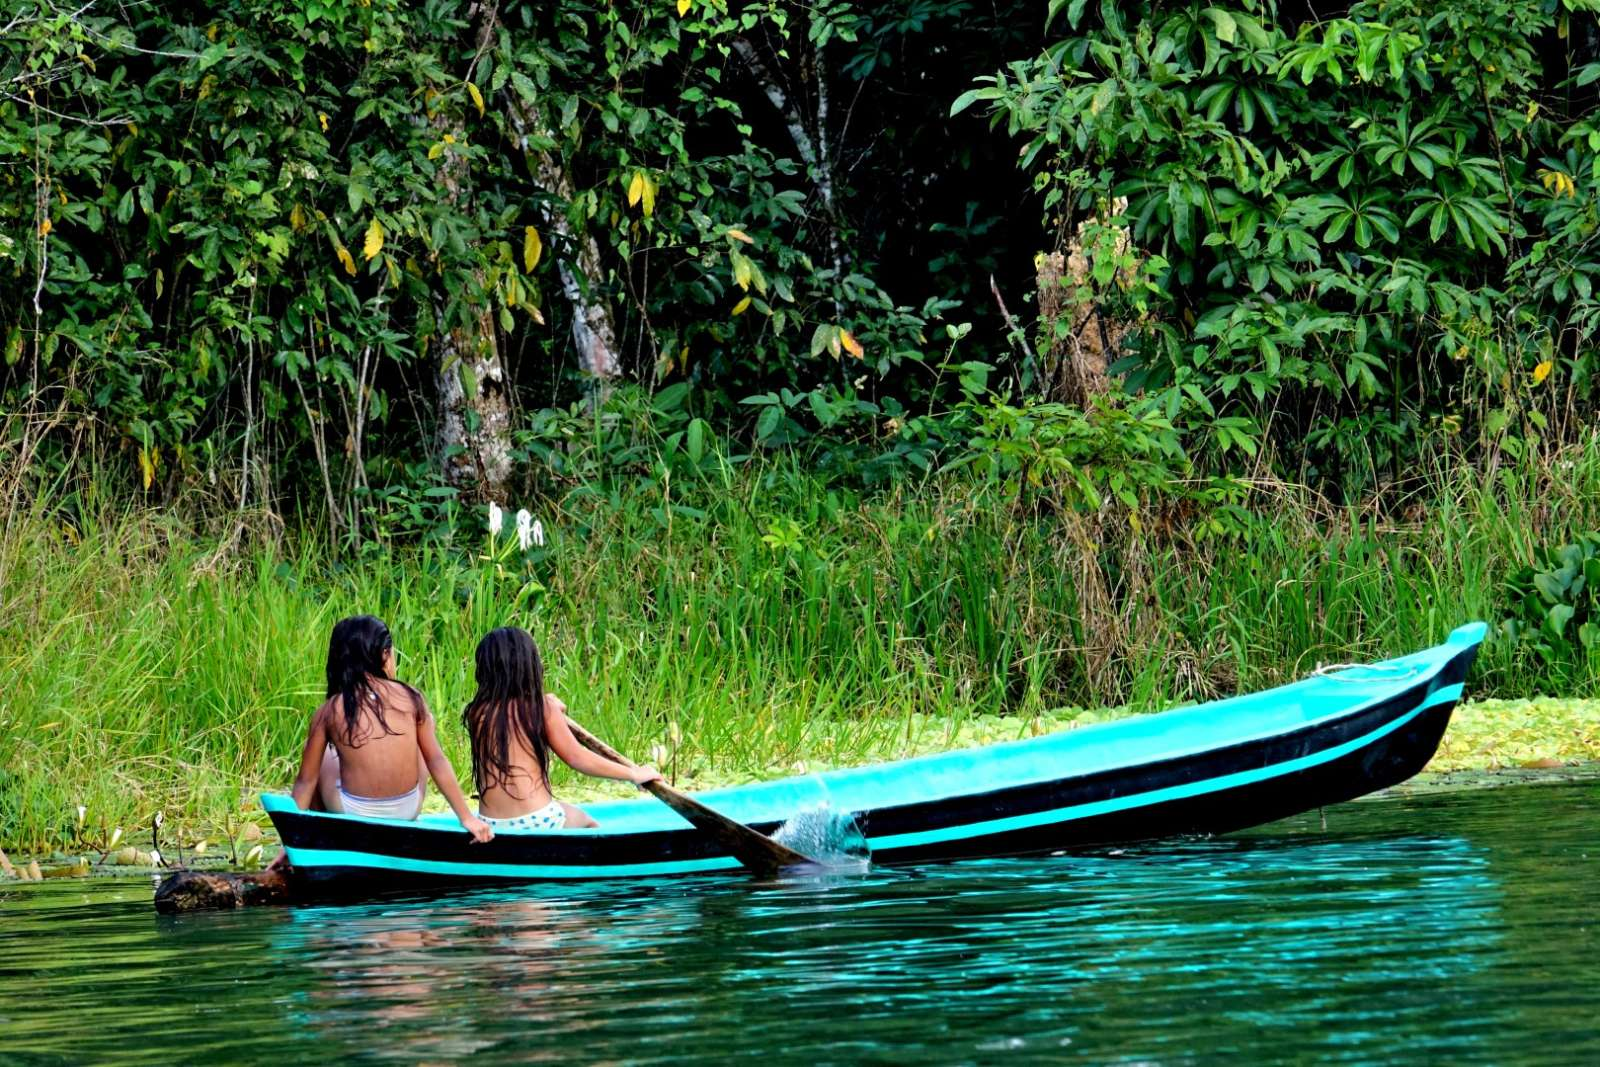 Two young girls in canoe on Rio Dulce, Guatemala